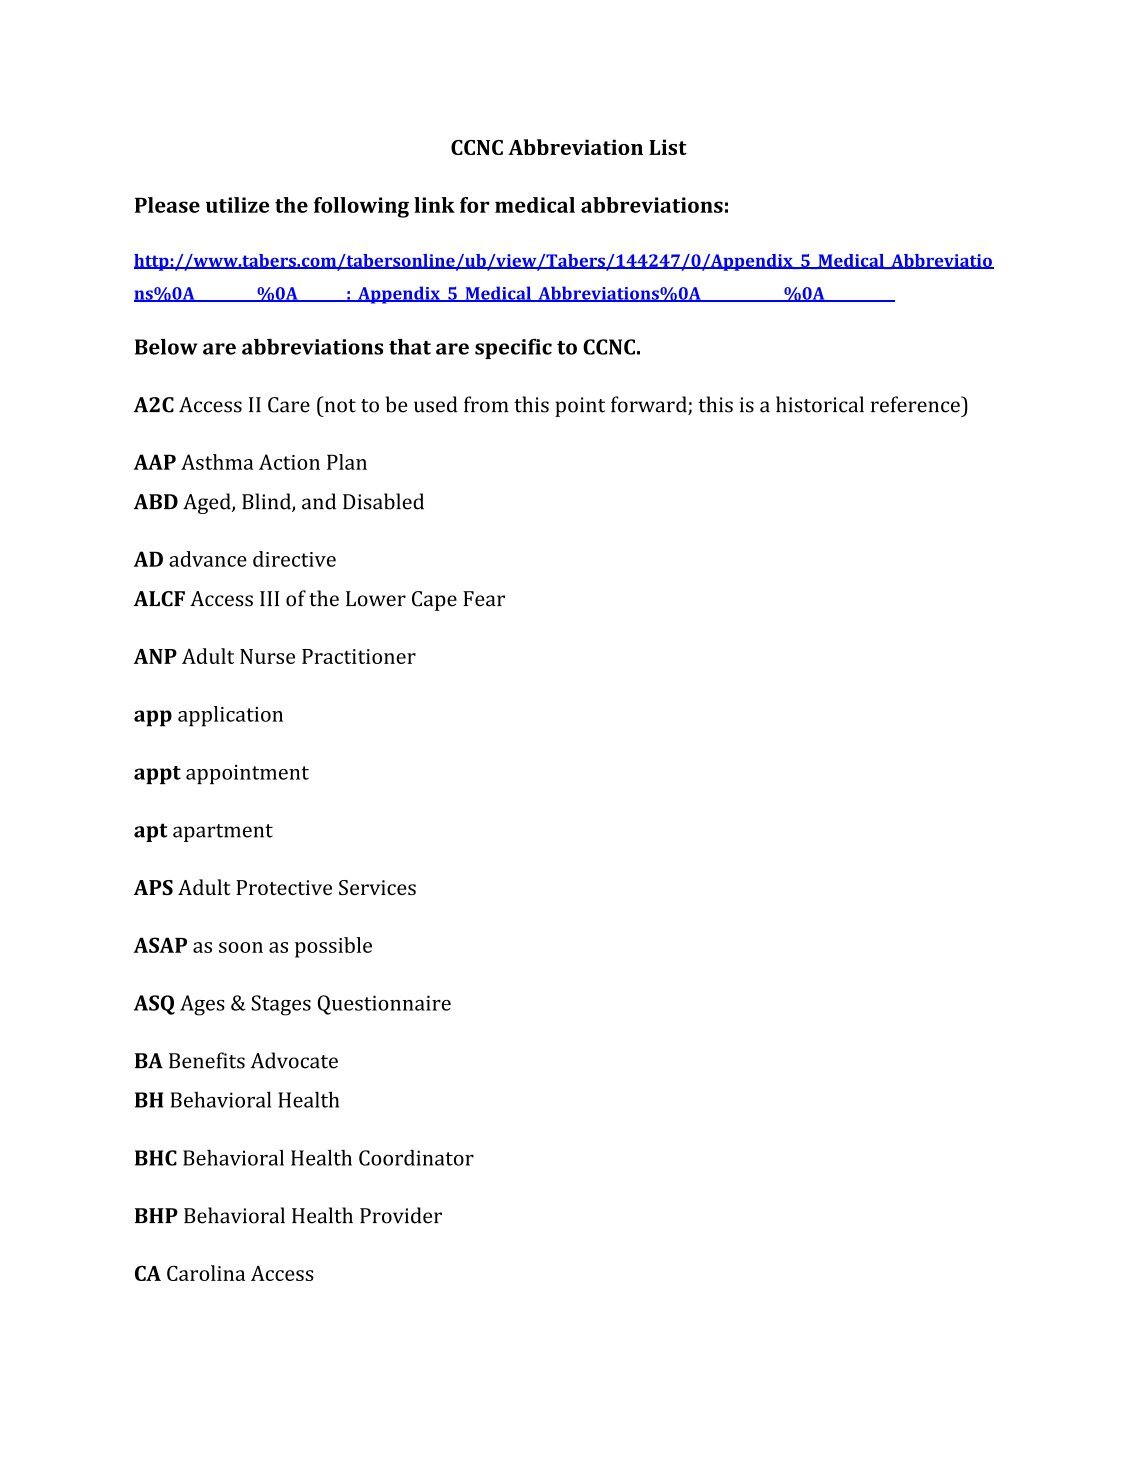 Medical abbreviations poa - Download Medical Abbreviation Aps Communitycarepartners Org